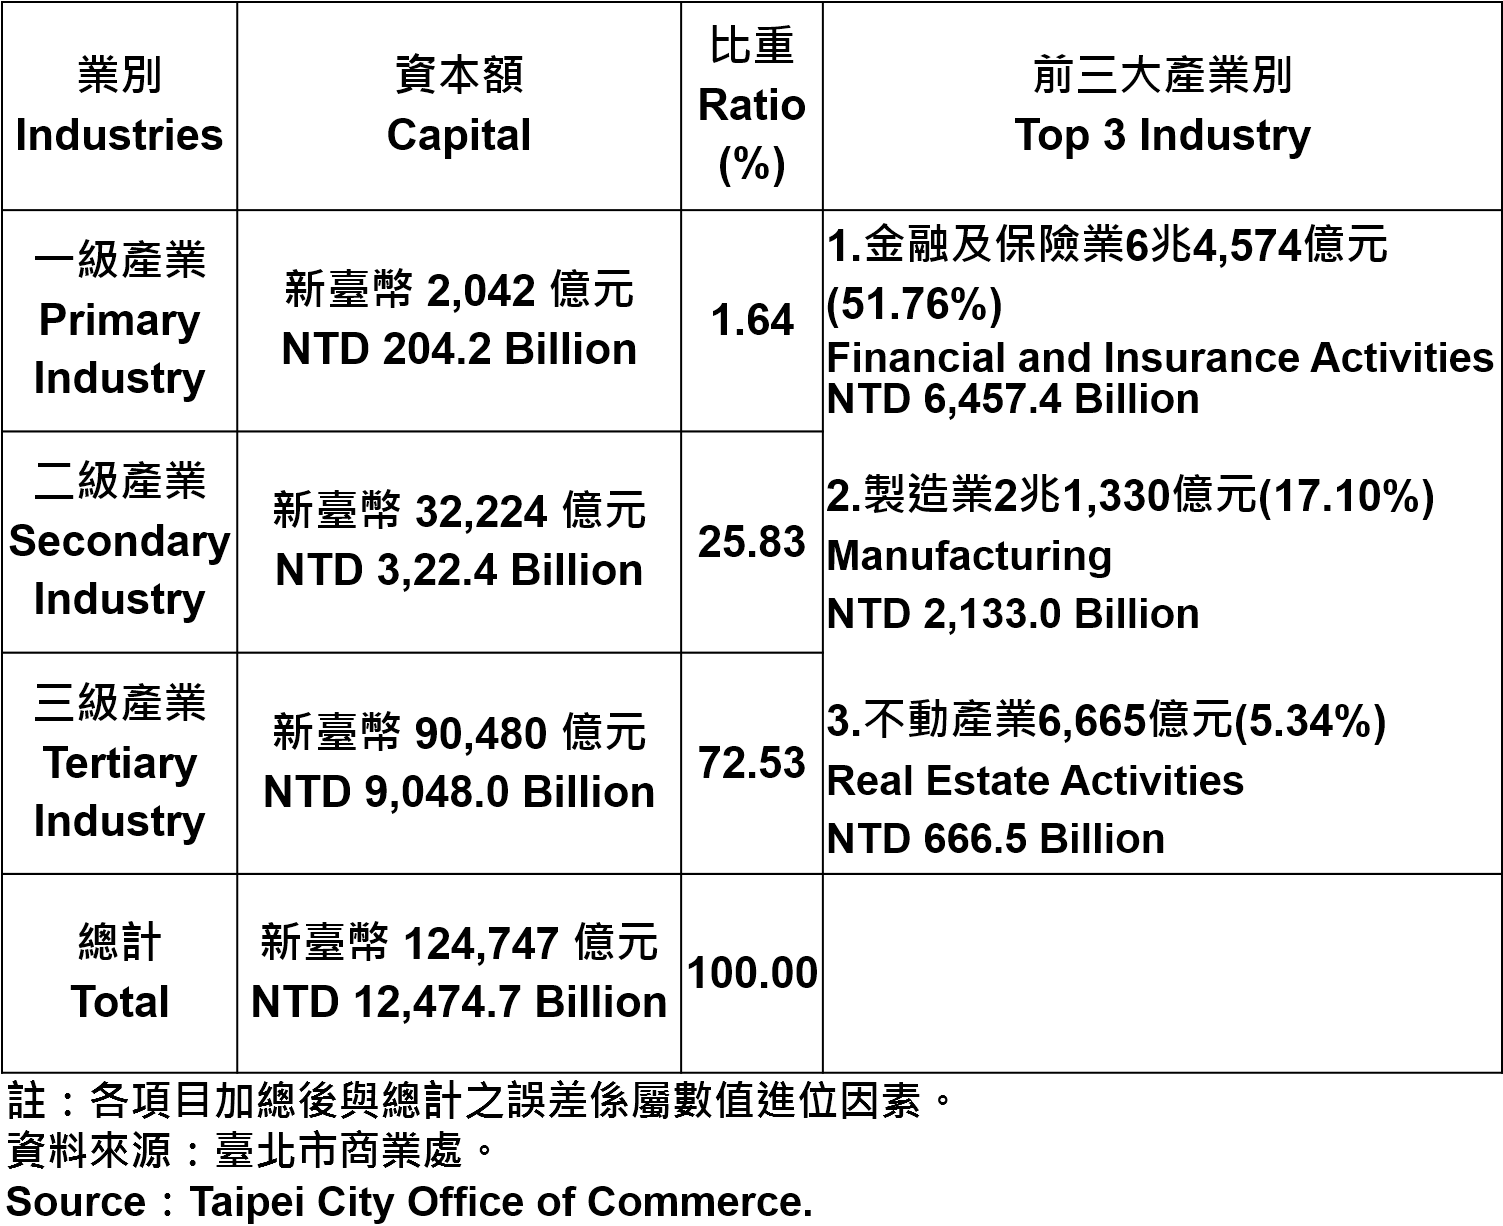 臺北市登記之公司資本總額—2018 Capital for the Companies and Firms Registered in Taipei City—2018